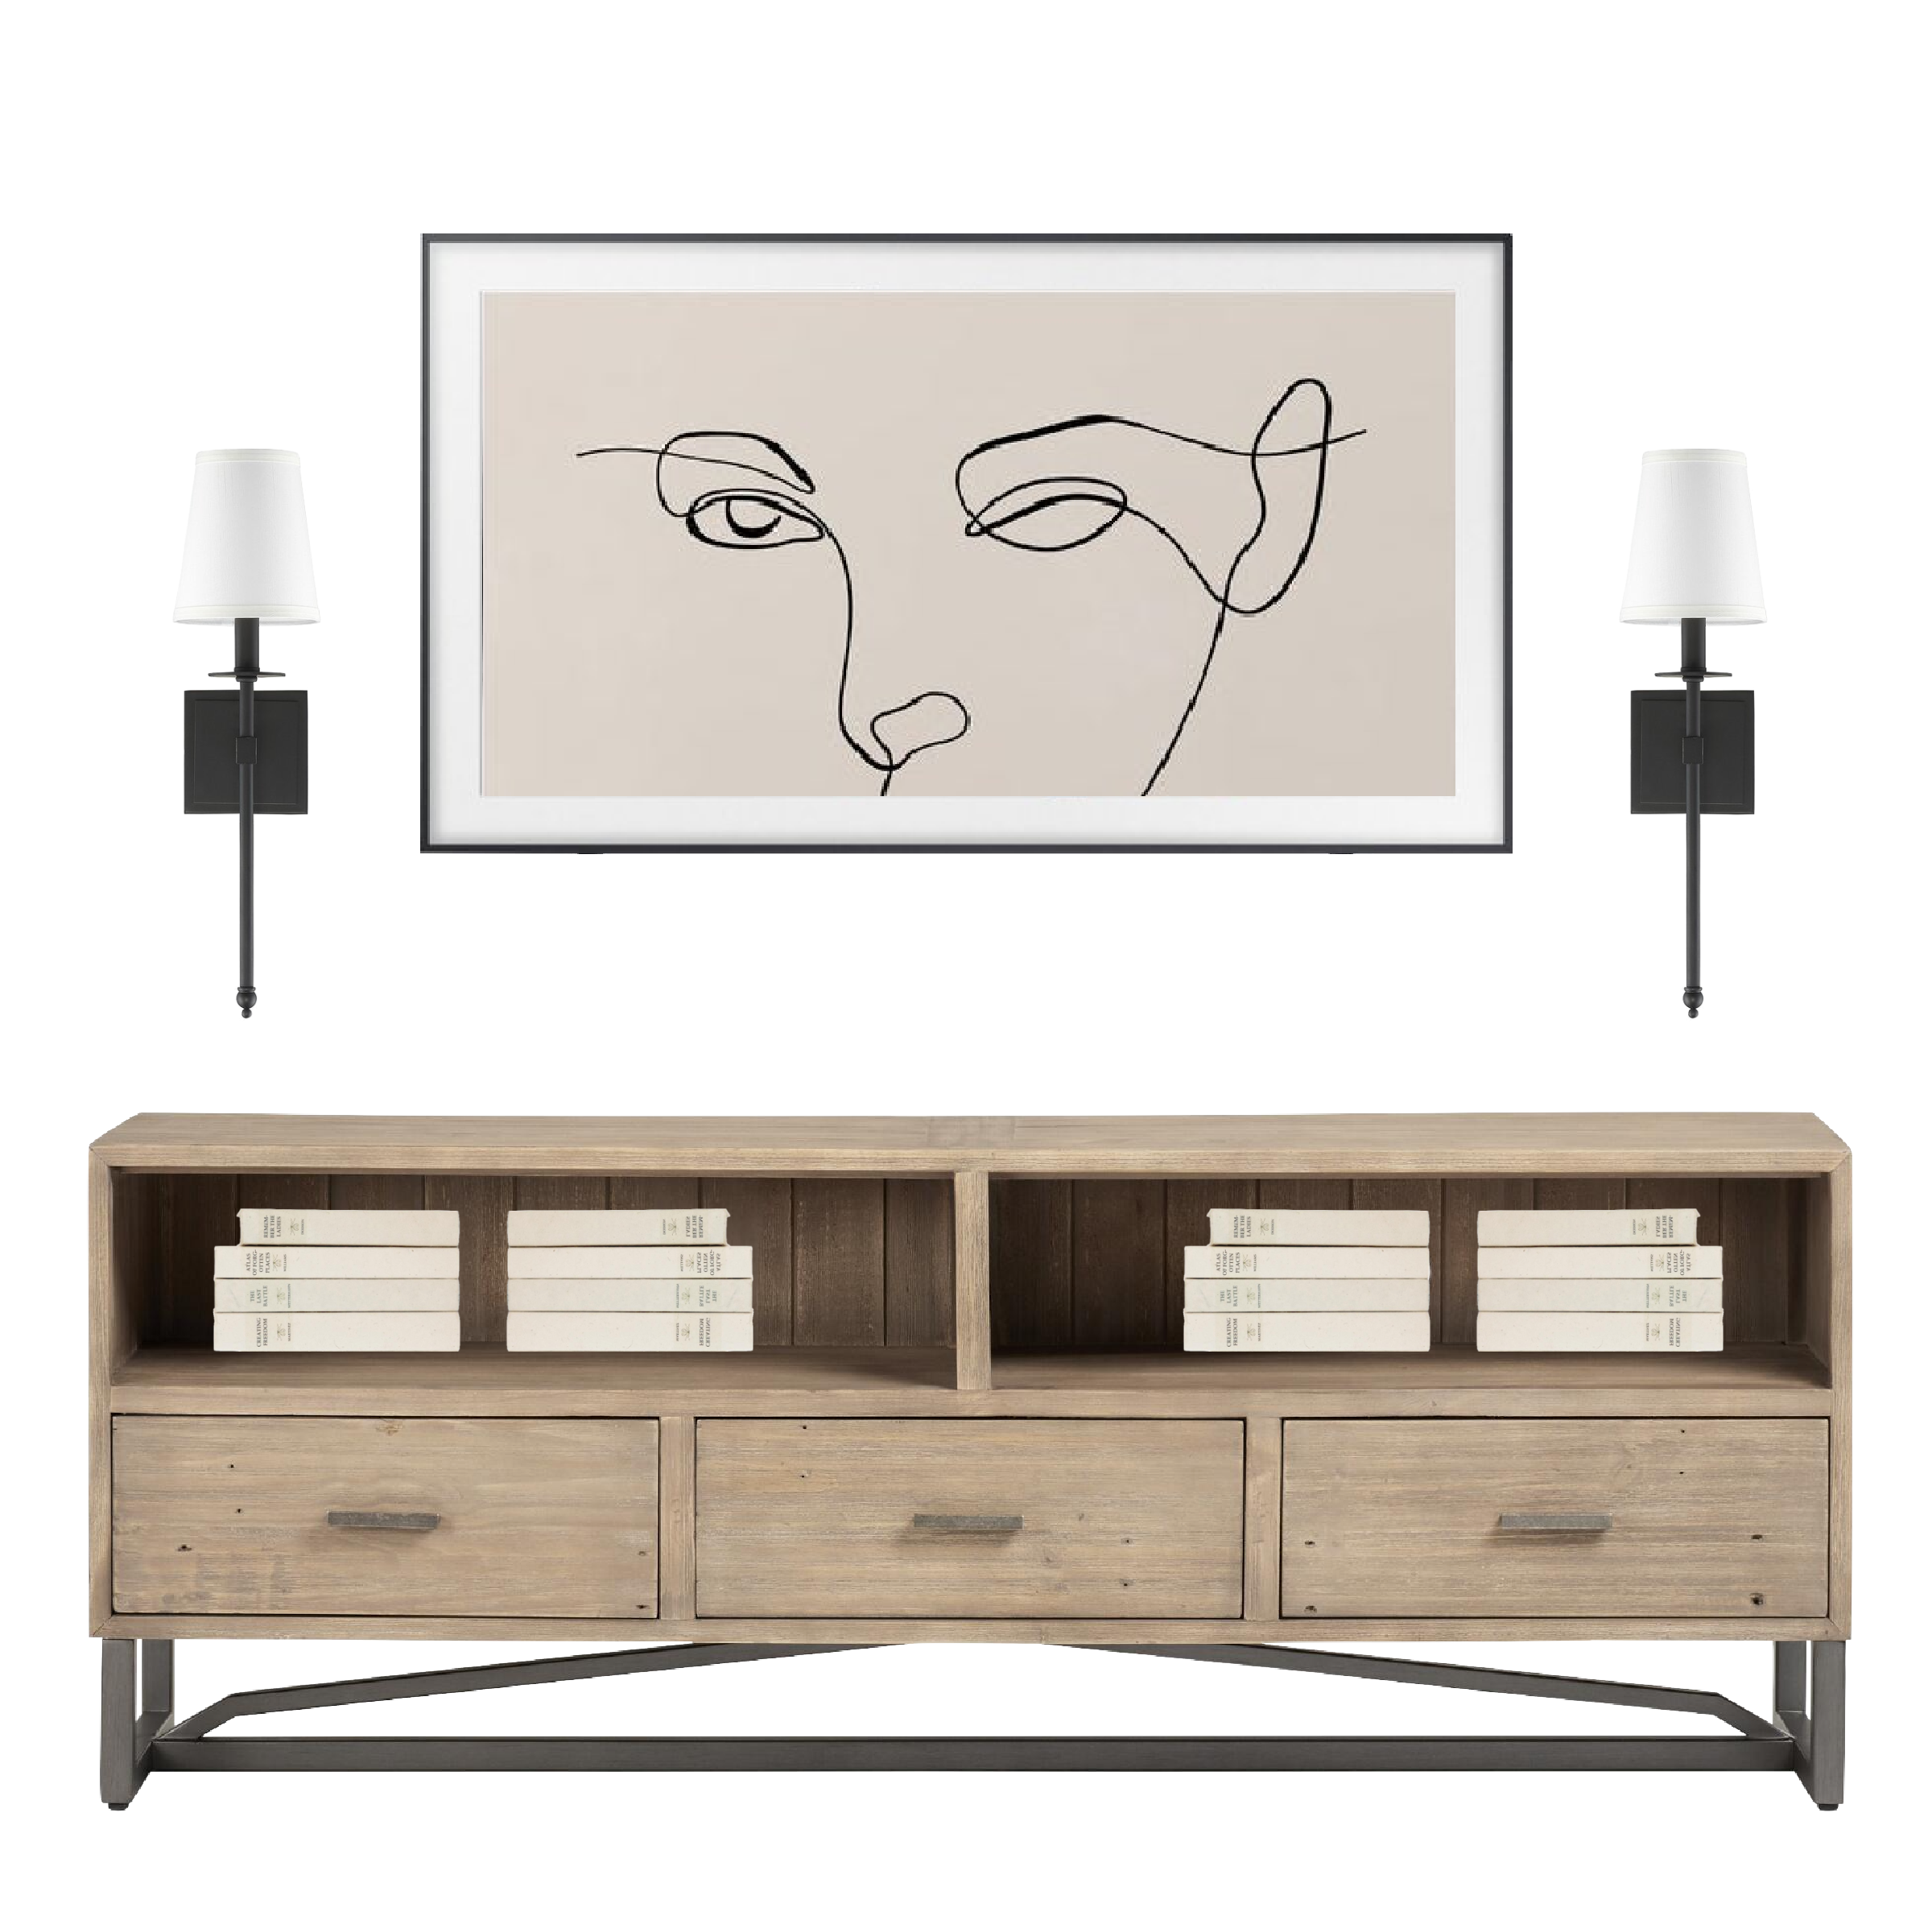 Easy ideas for decorating around a TV, including a huge list of my current favorite items for styling!